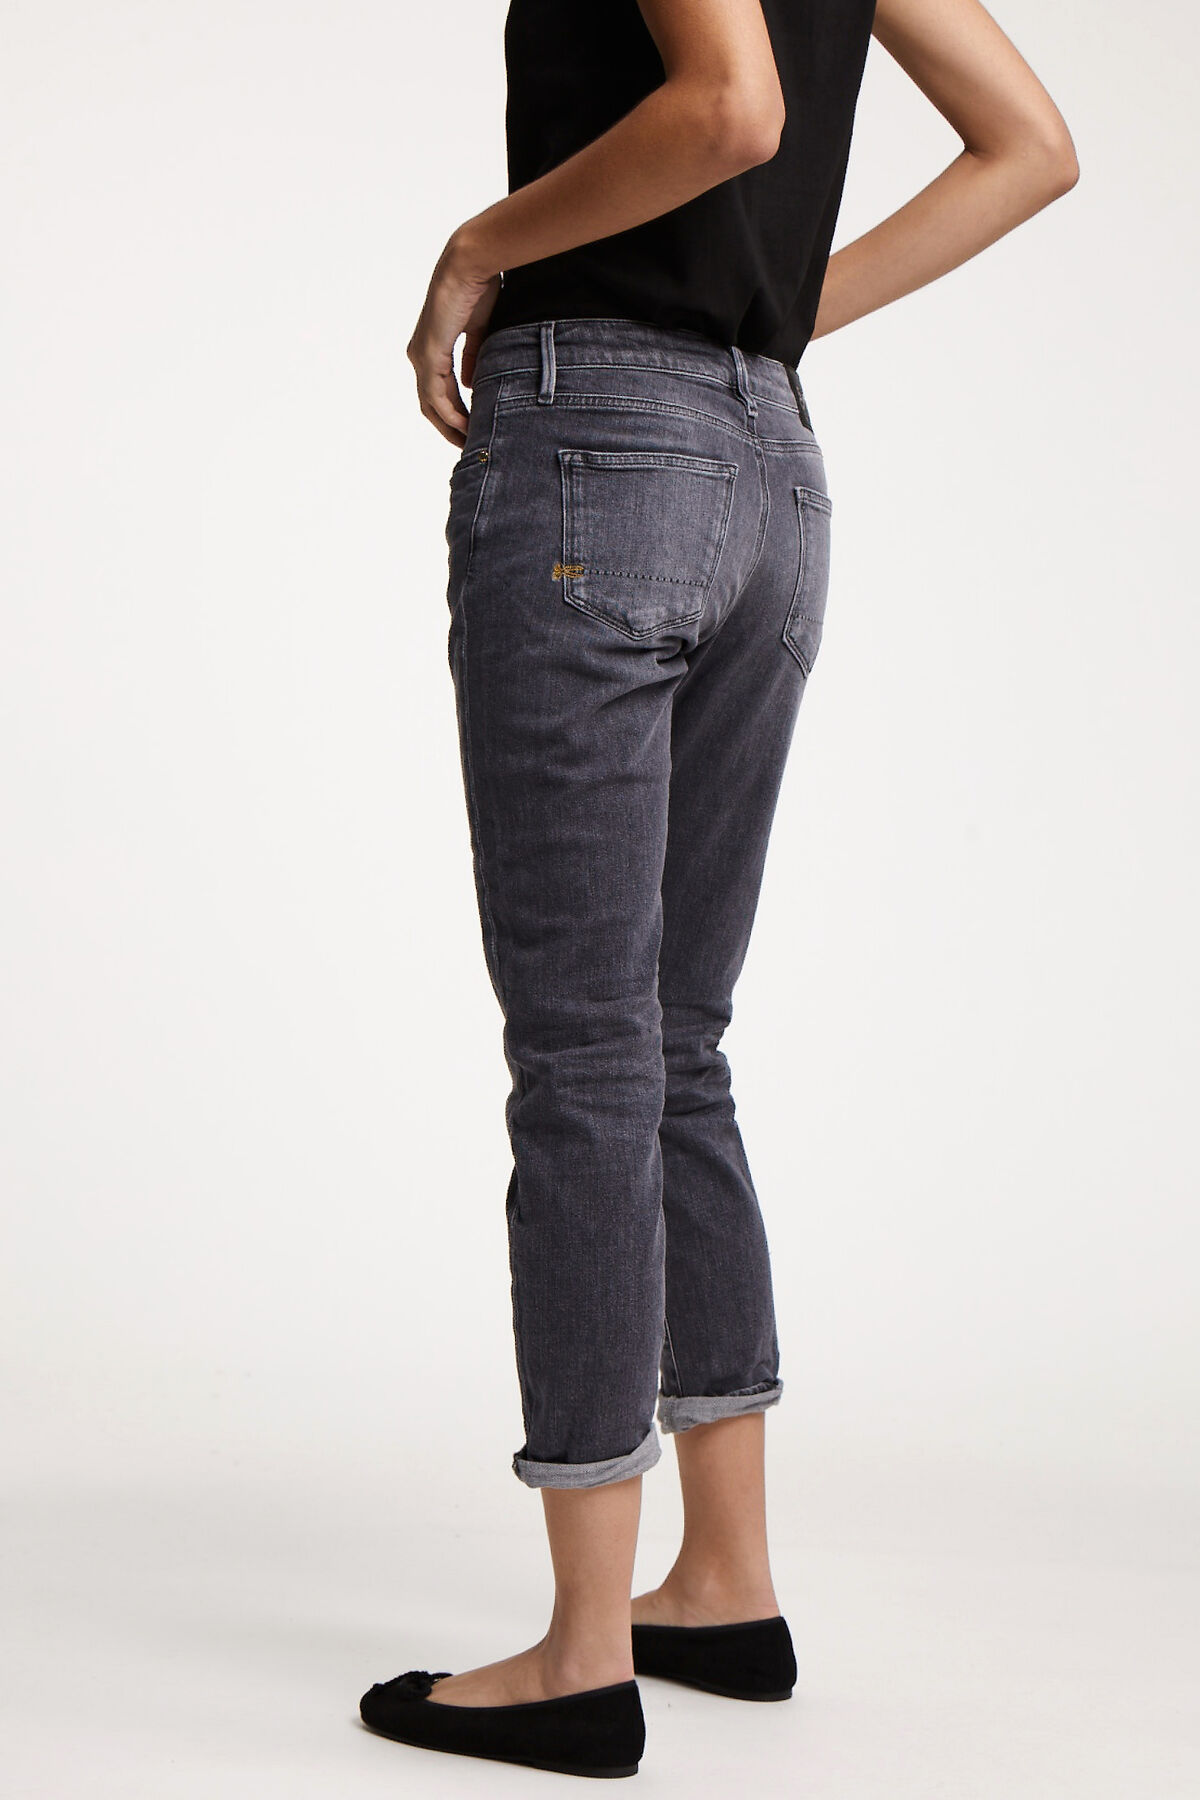 MONROE Mid-grey sustainable denim - Girlfriend Fit